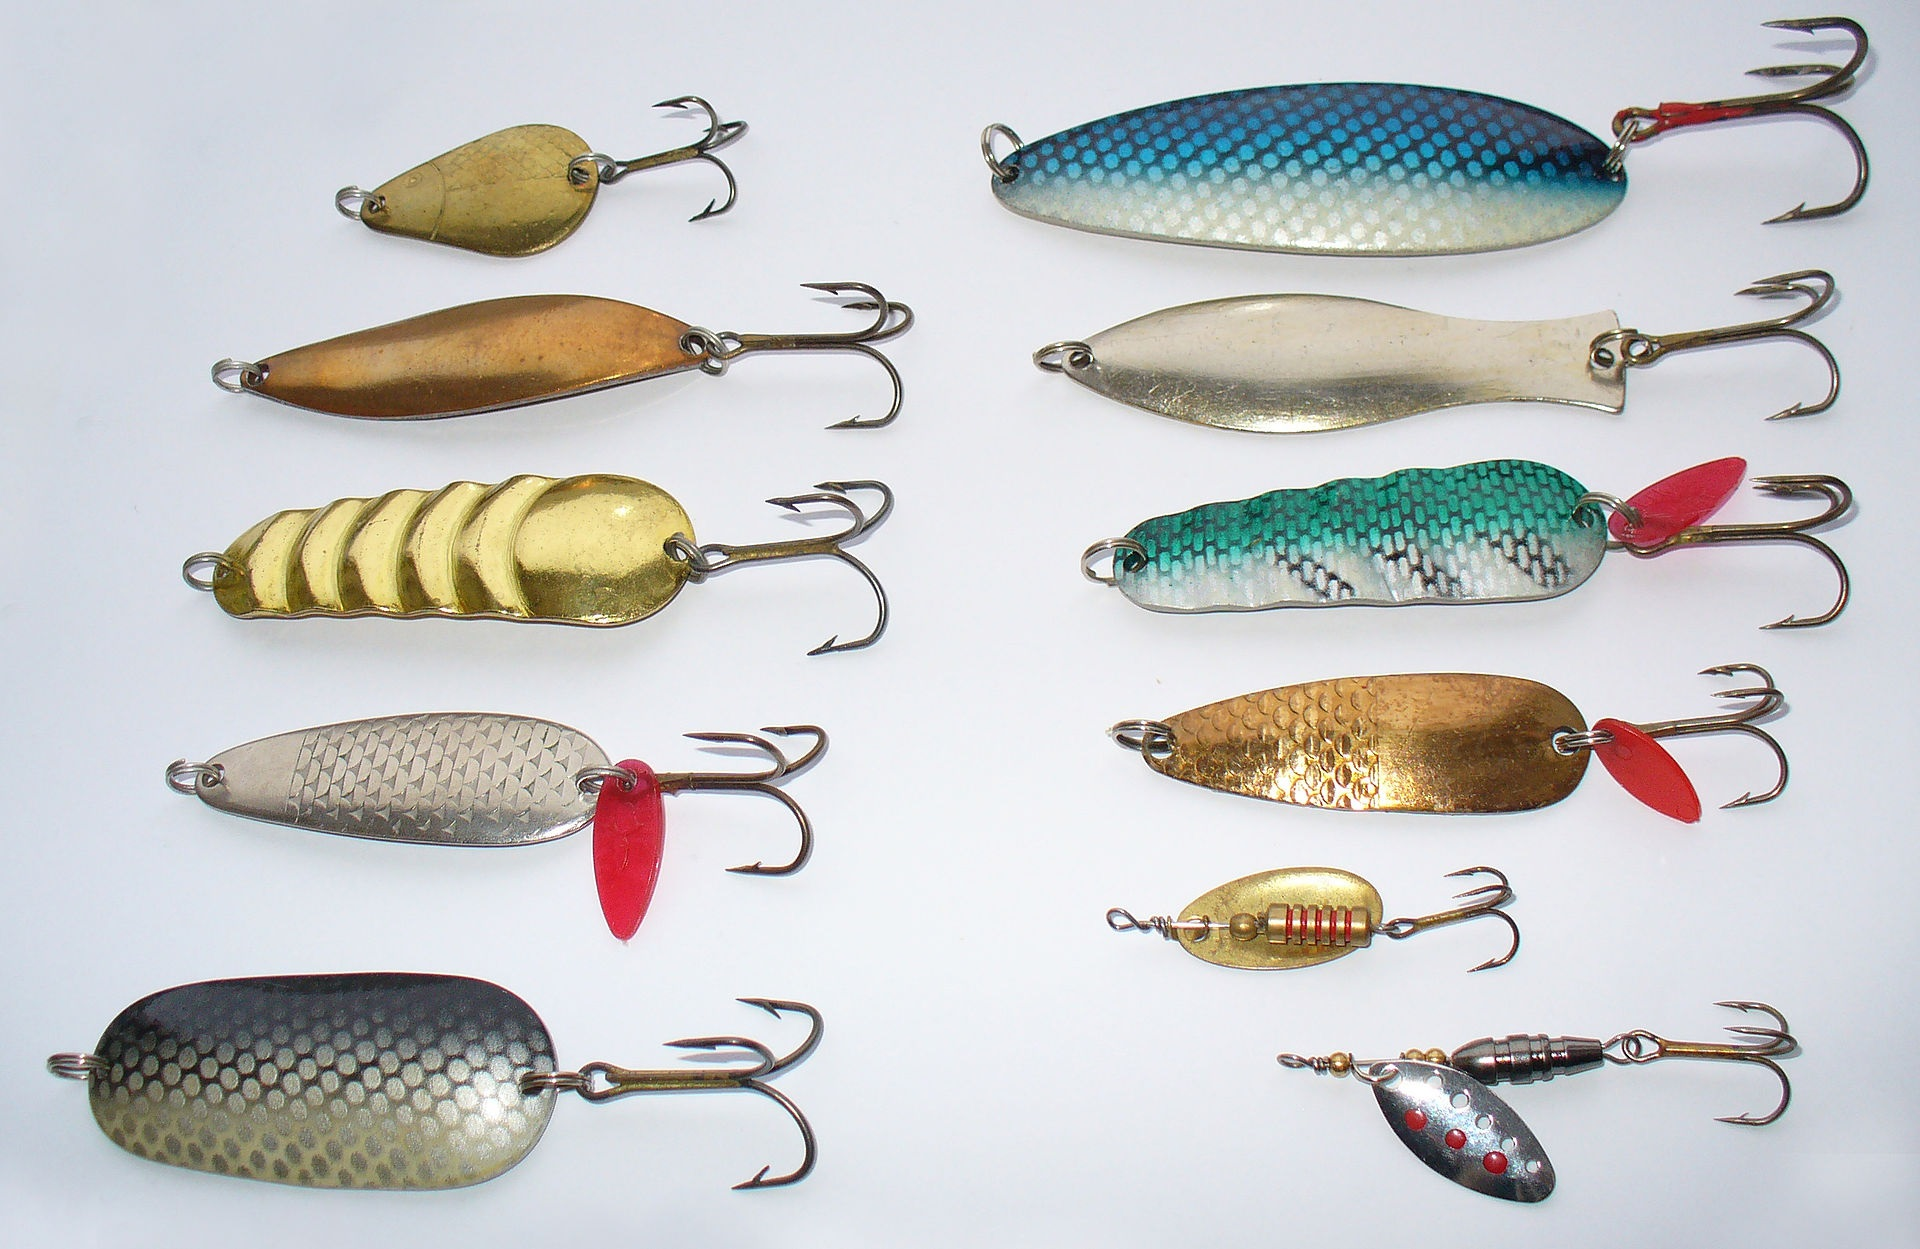 Spoon lures with hooks on a white background.